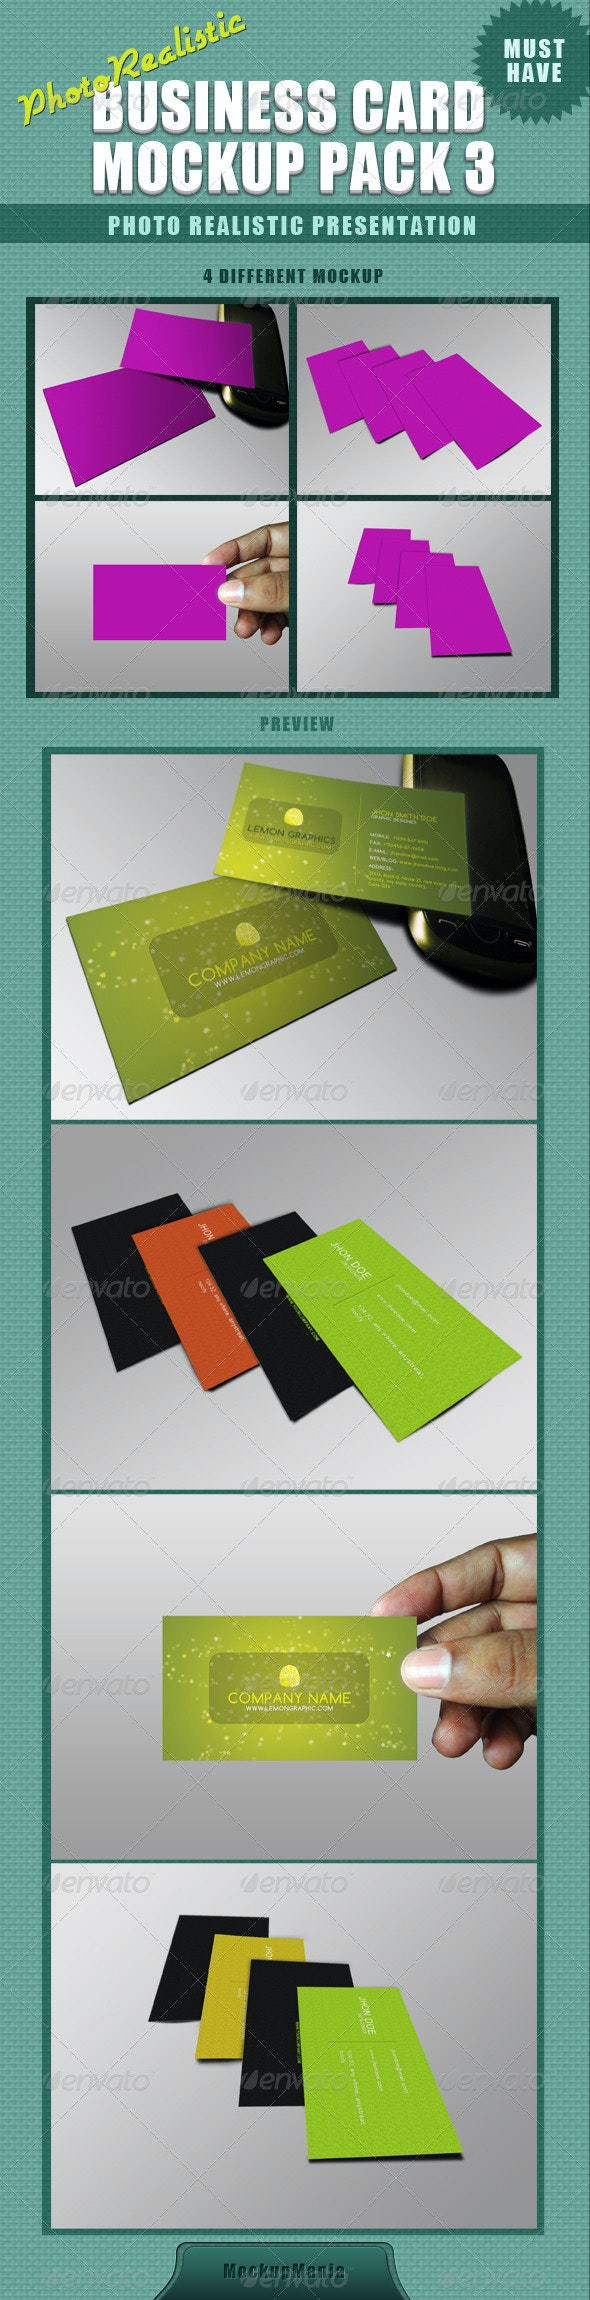 Photorealistic Business Card Mockup - 3 - Business Cards Print